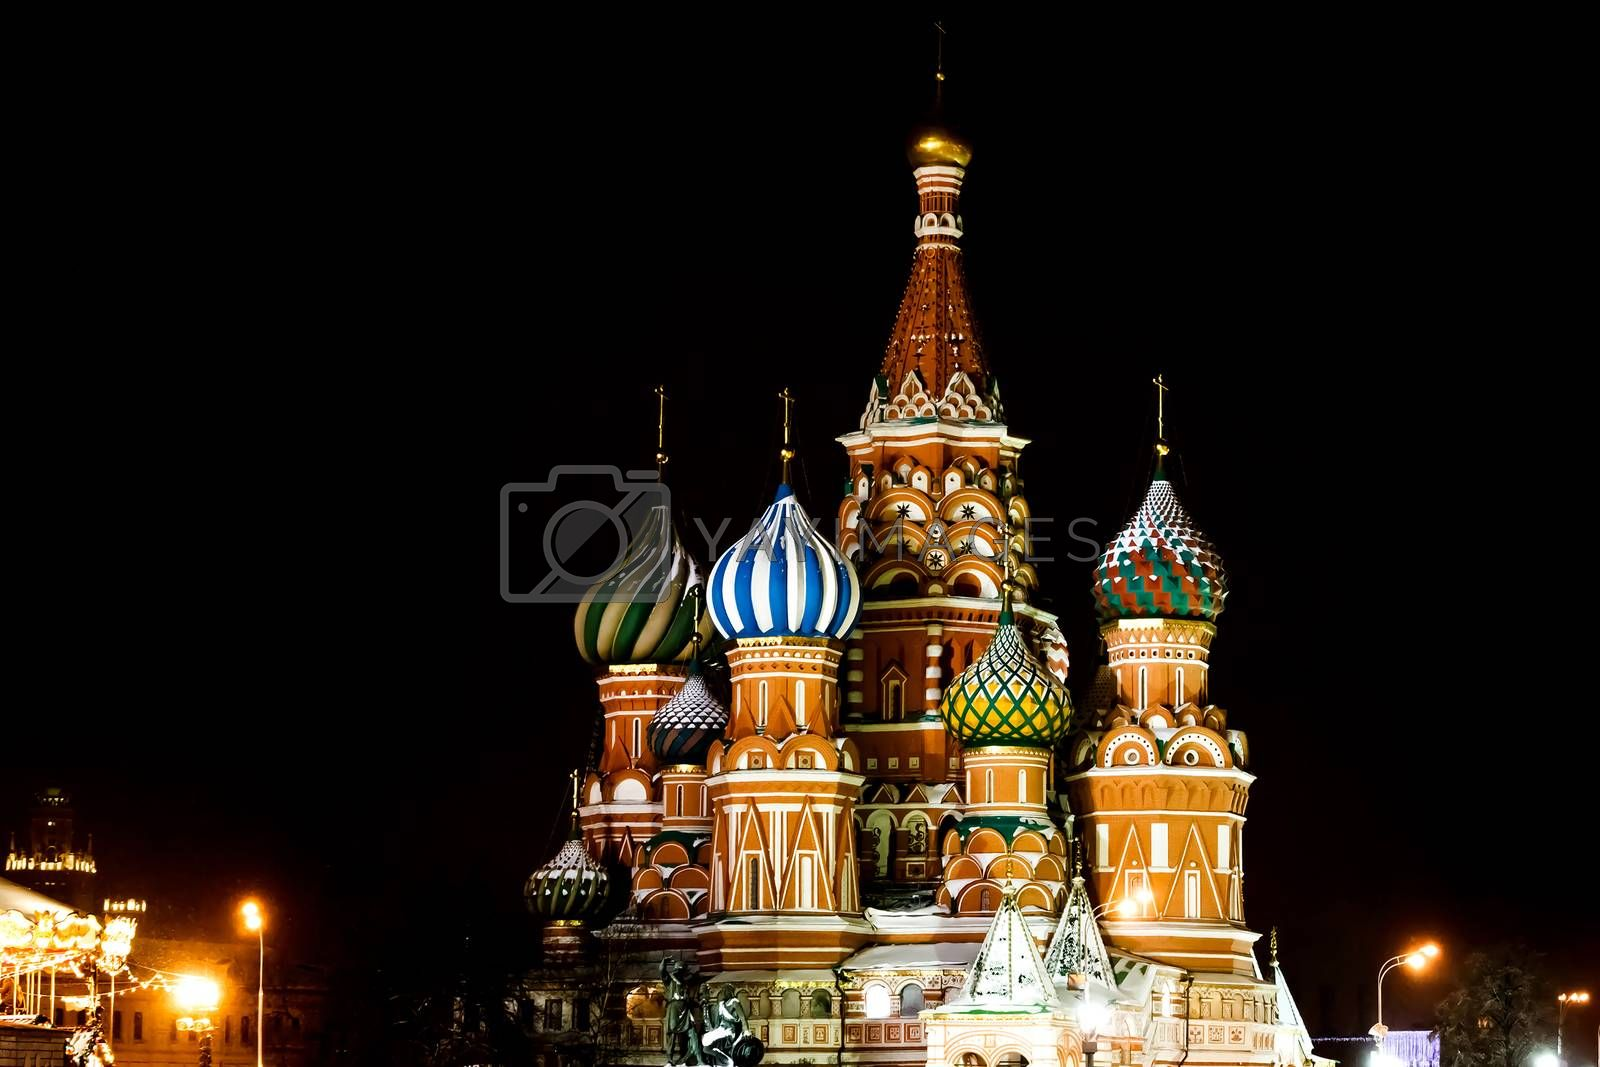 St Basils Cathedral at night. Winter season. Moscow, Russia